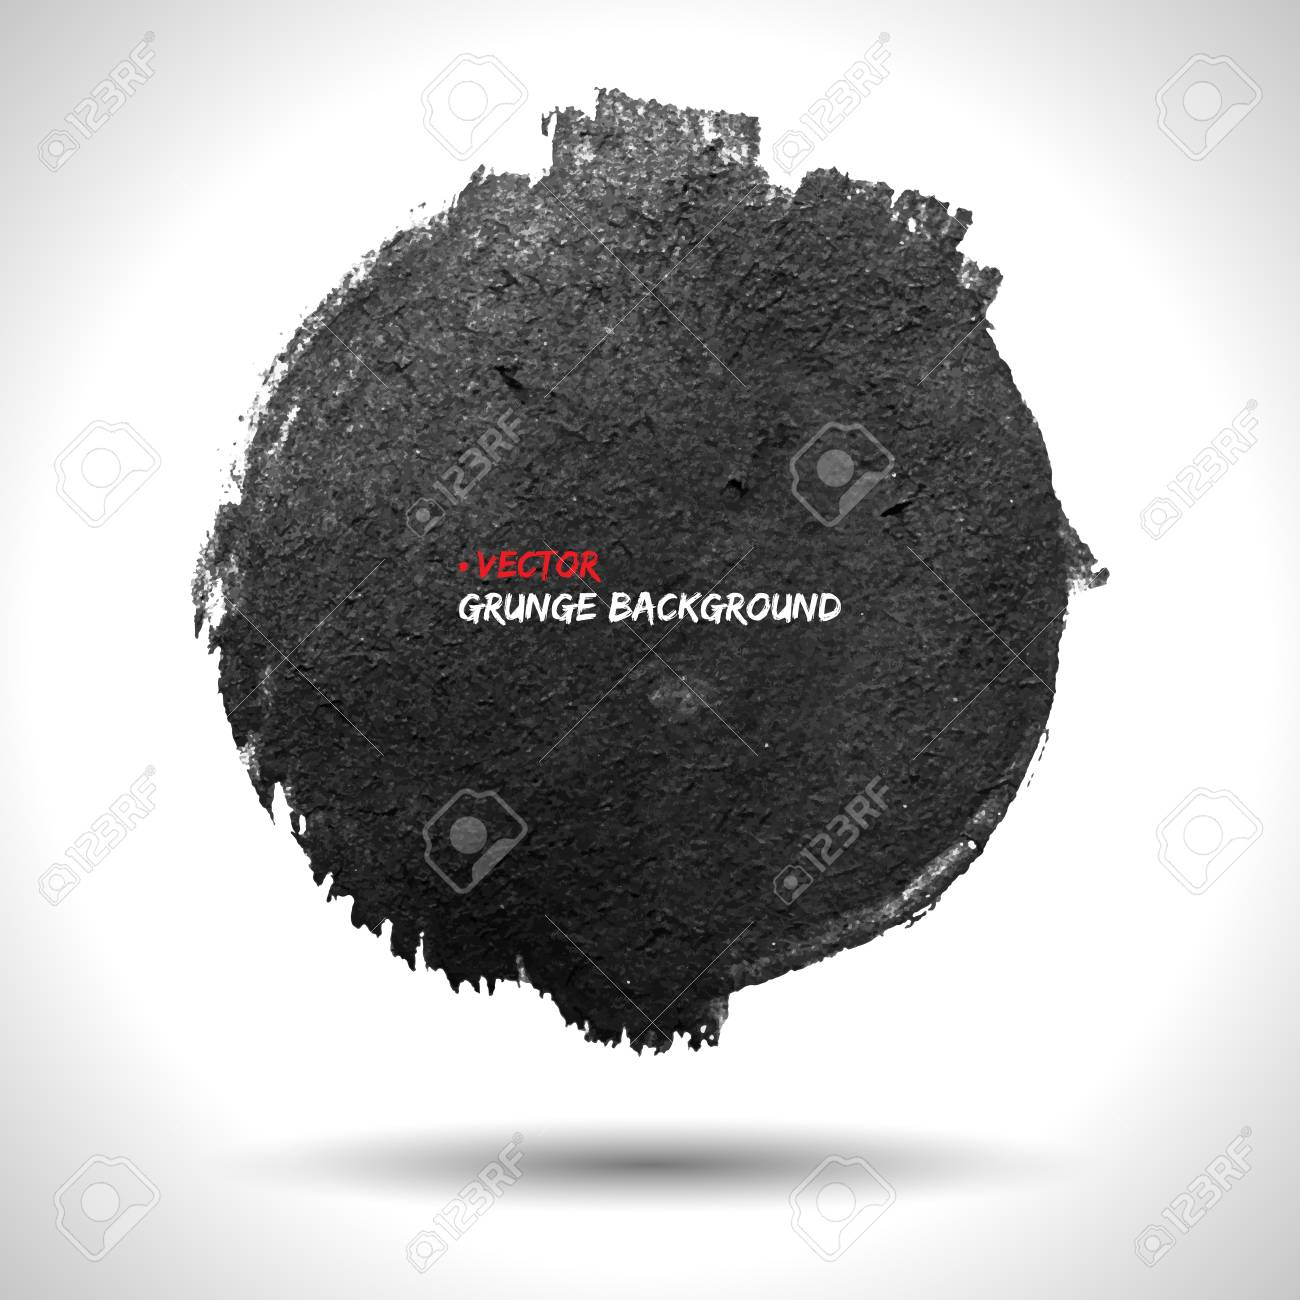 Grunge background Stock Vector - 18393398